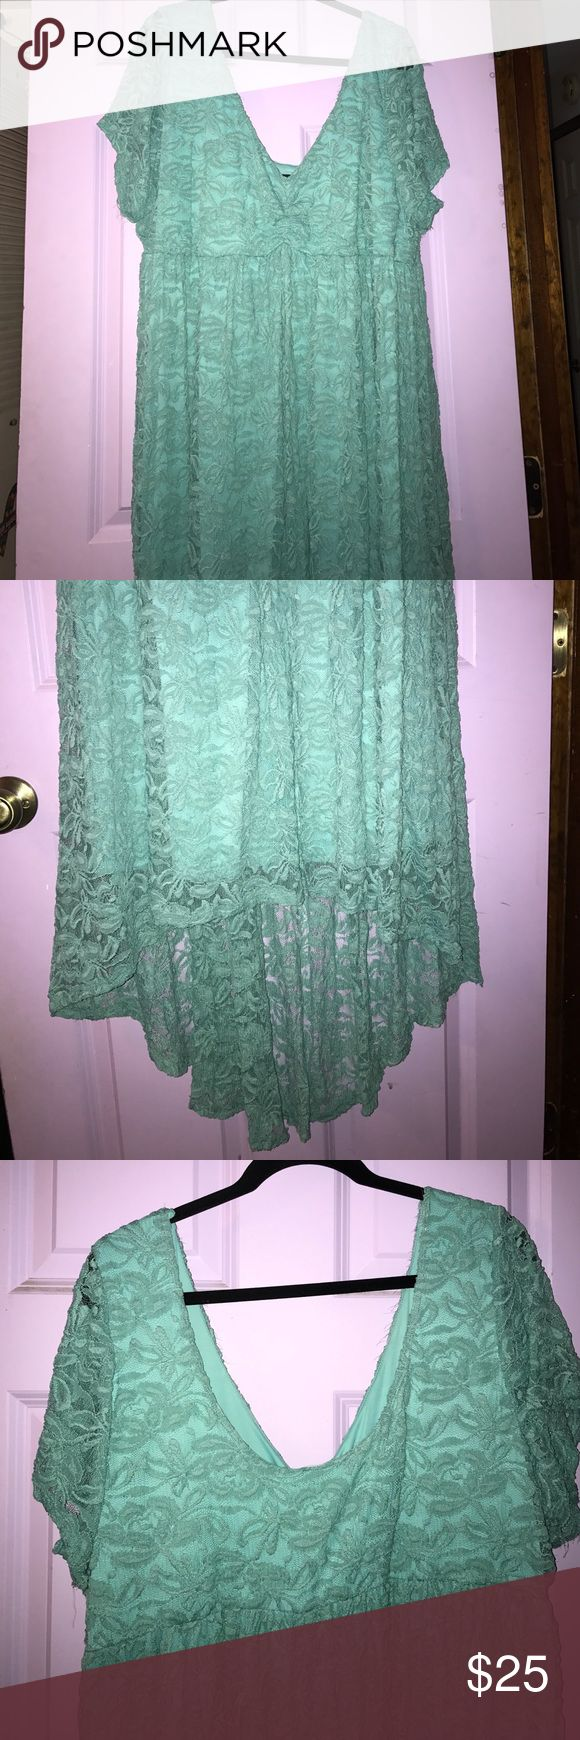 Turquoise lace dress torrid sz 28 Gorgeous dress. High low bottle. Sweetheart neck. Flattering. Worn once. Torrid sz 28 torrid Dresses High Low